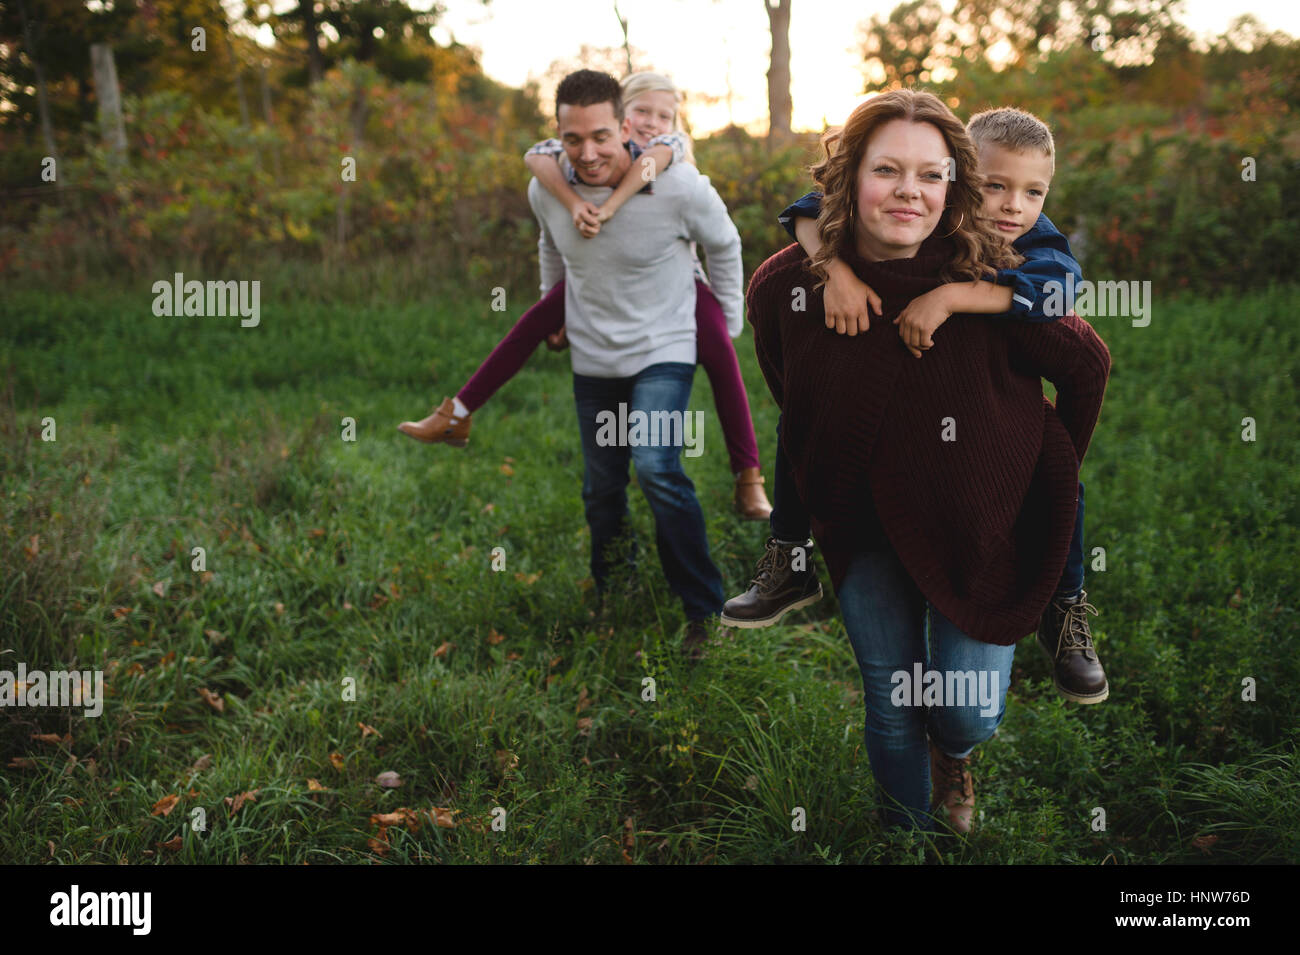 Parents giving children piggy back in field - Stock Image